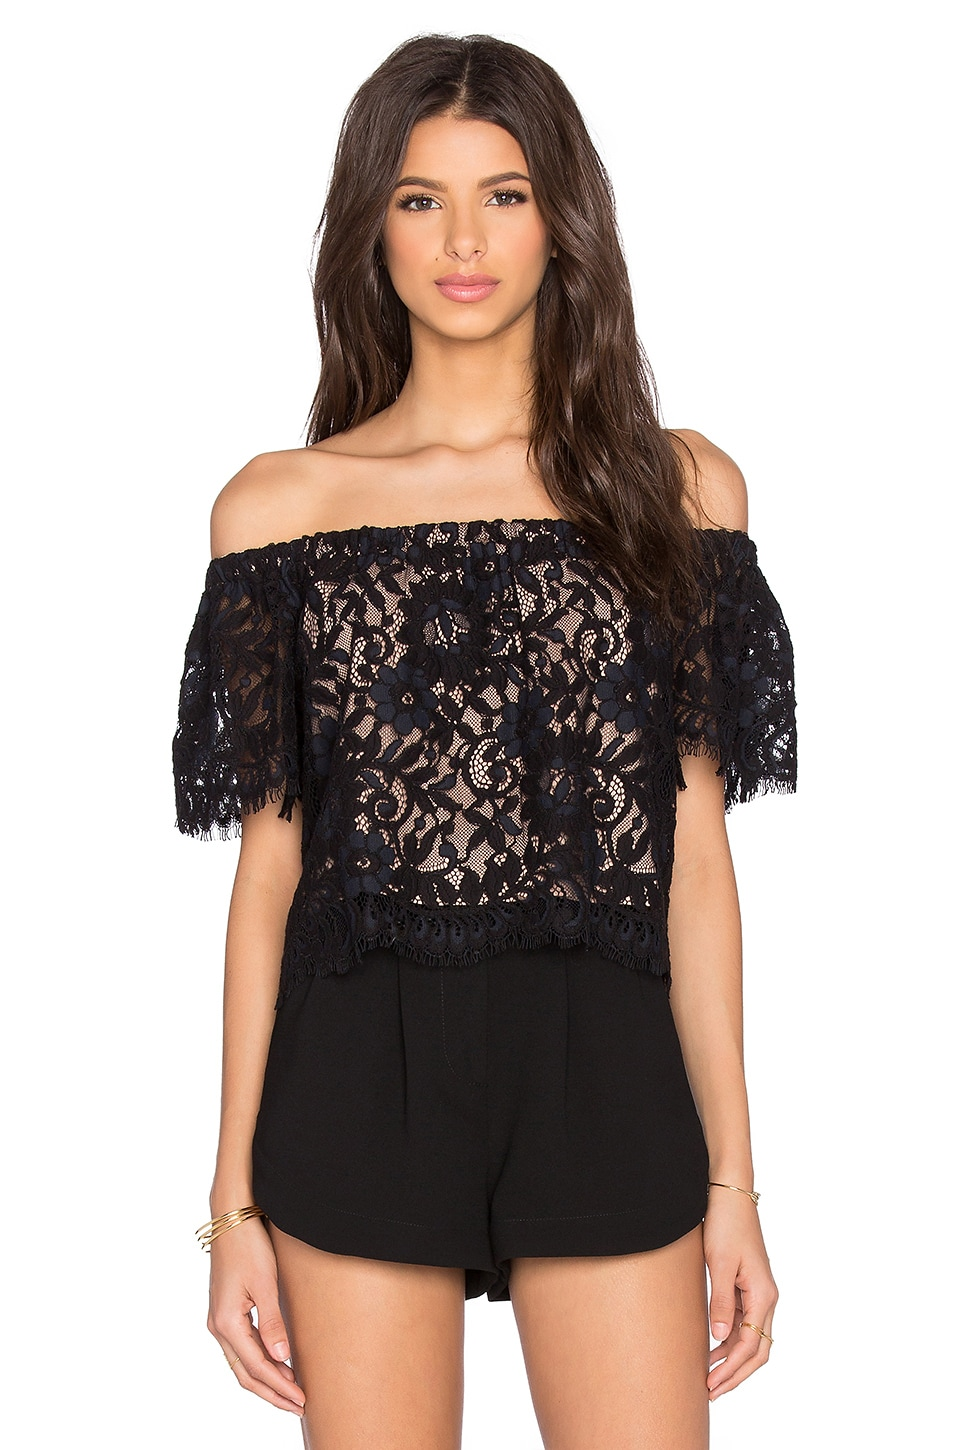 Alexis x REVOLVE Fernanda Top in Black Lace